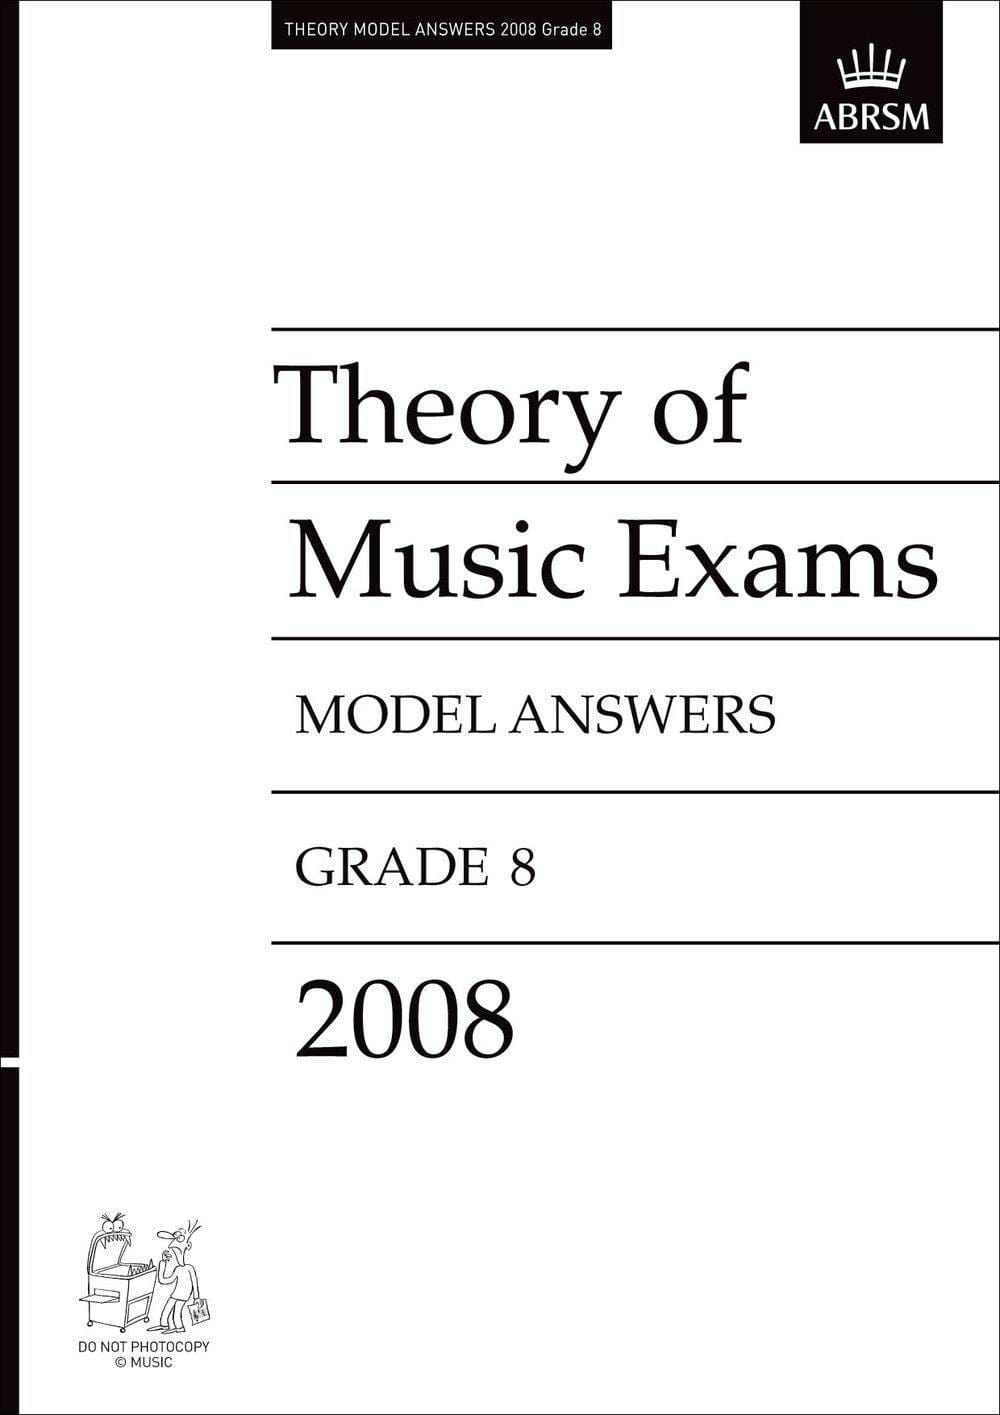 Theory of Music Exams Model Answers, Grade 8-2008 - Biggars Music